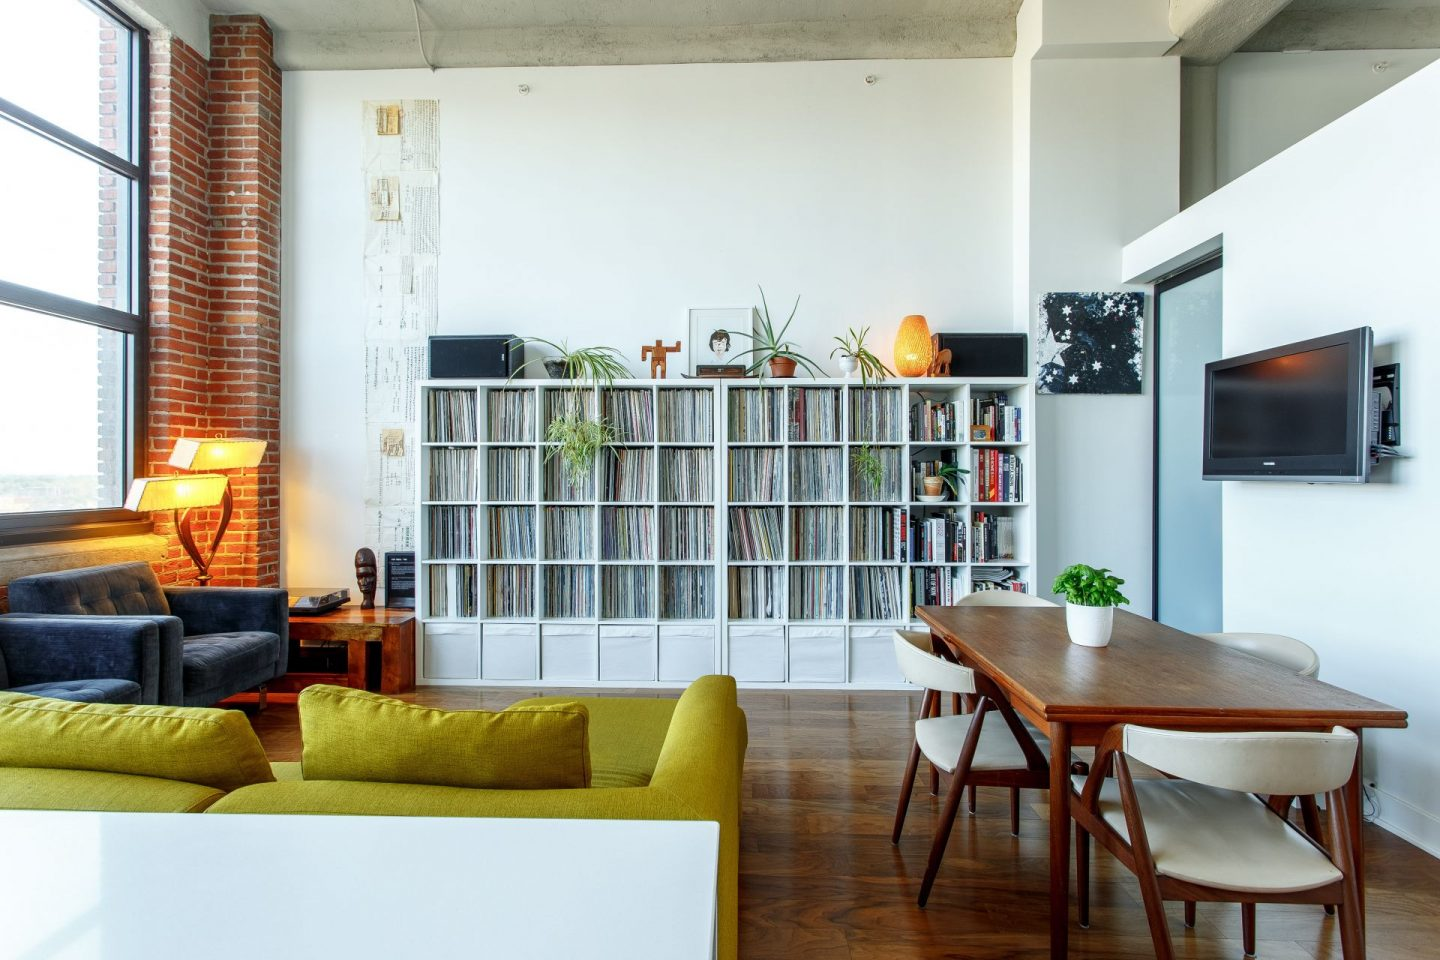 , Short On Space? Practical Ways To Make Your Home Work Better